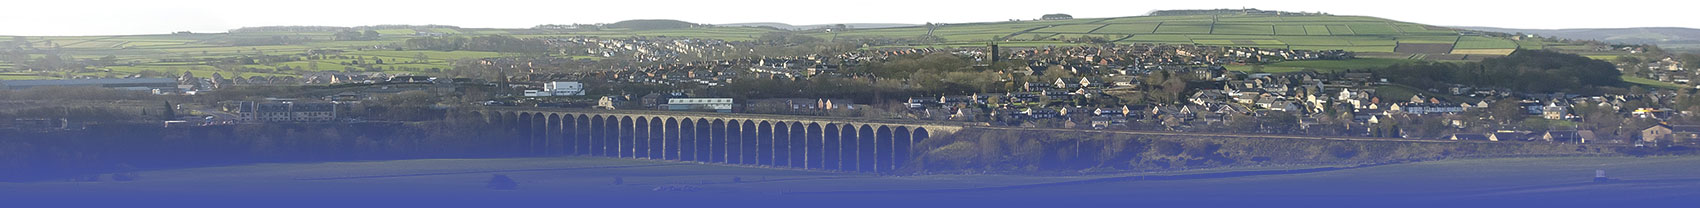 Penistone Viaduct from Barnsley Road